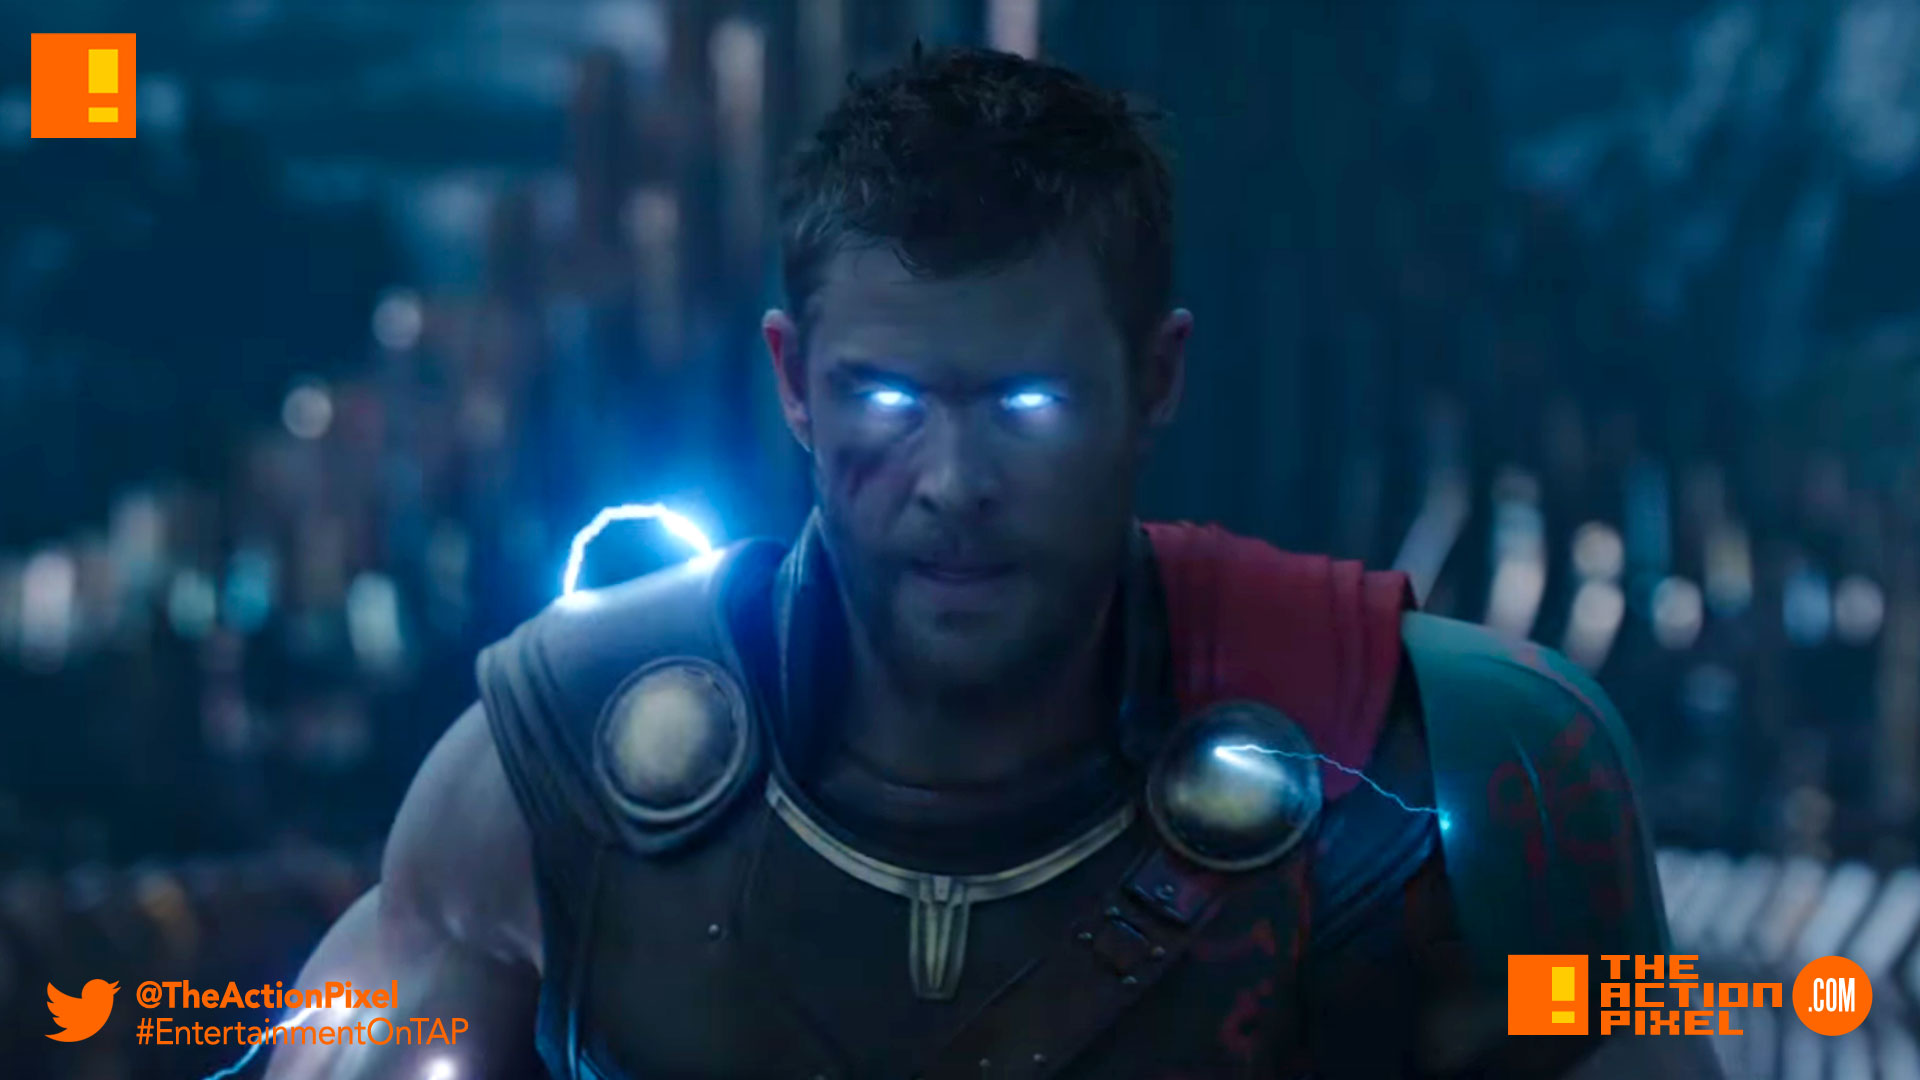 loki, thor ragnarok, hulk, ragnarok, thor, thor: ragnarok, marvel, marvel comics, tom hiddleston,chris hemsworth, david banner, entertainment on tap, the action pixel, marvel studios, teaser, trailer, teaser trailer,poster, the action pixel, thor: ragnarok, hulk, the incredible hulk